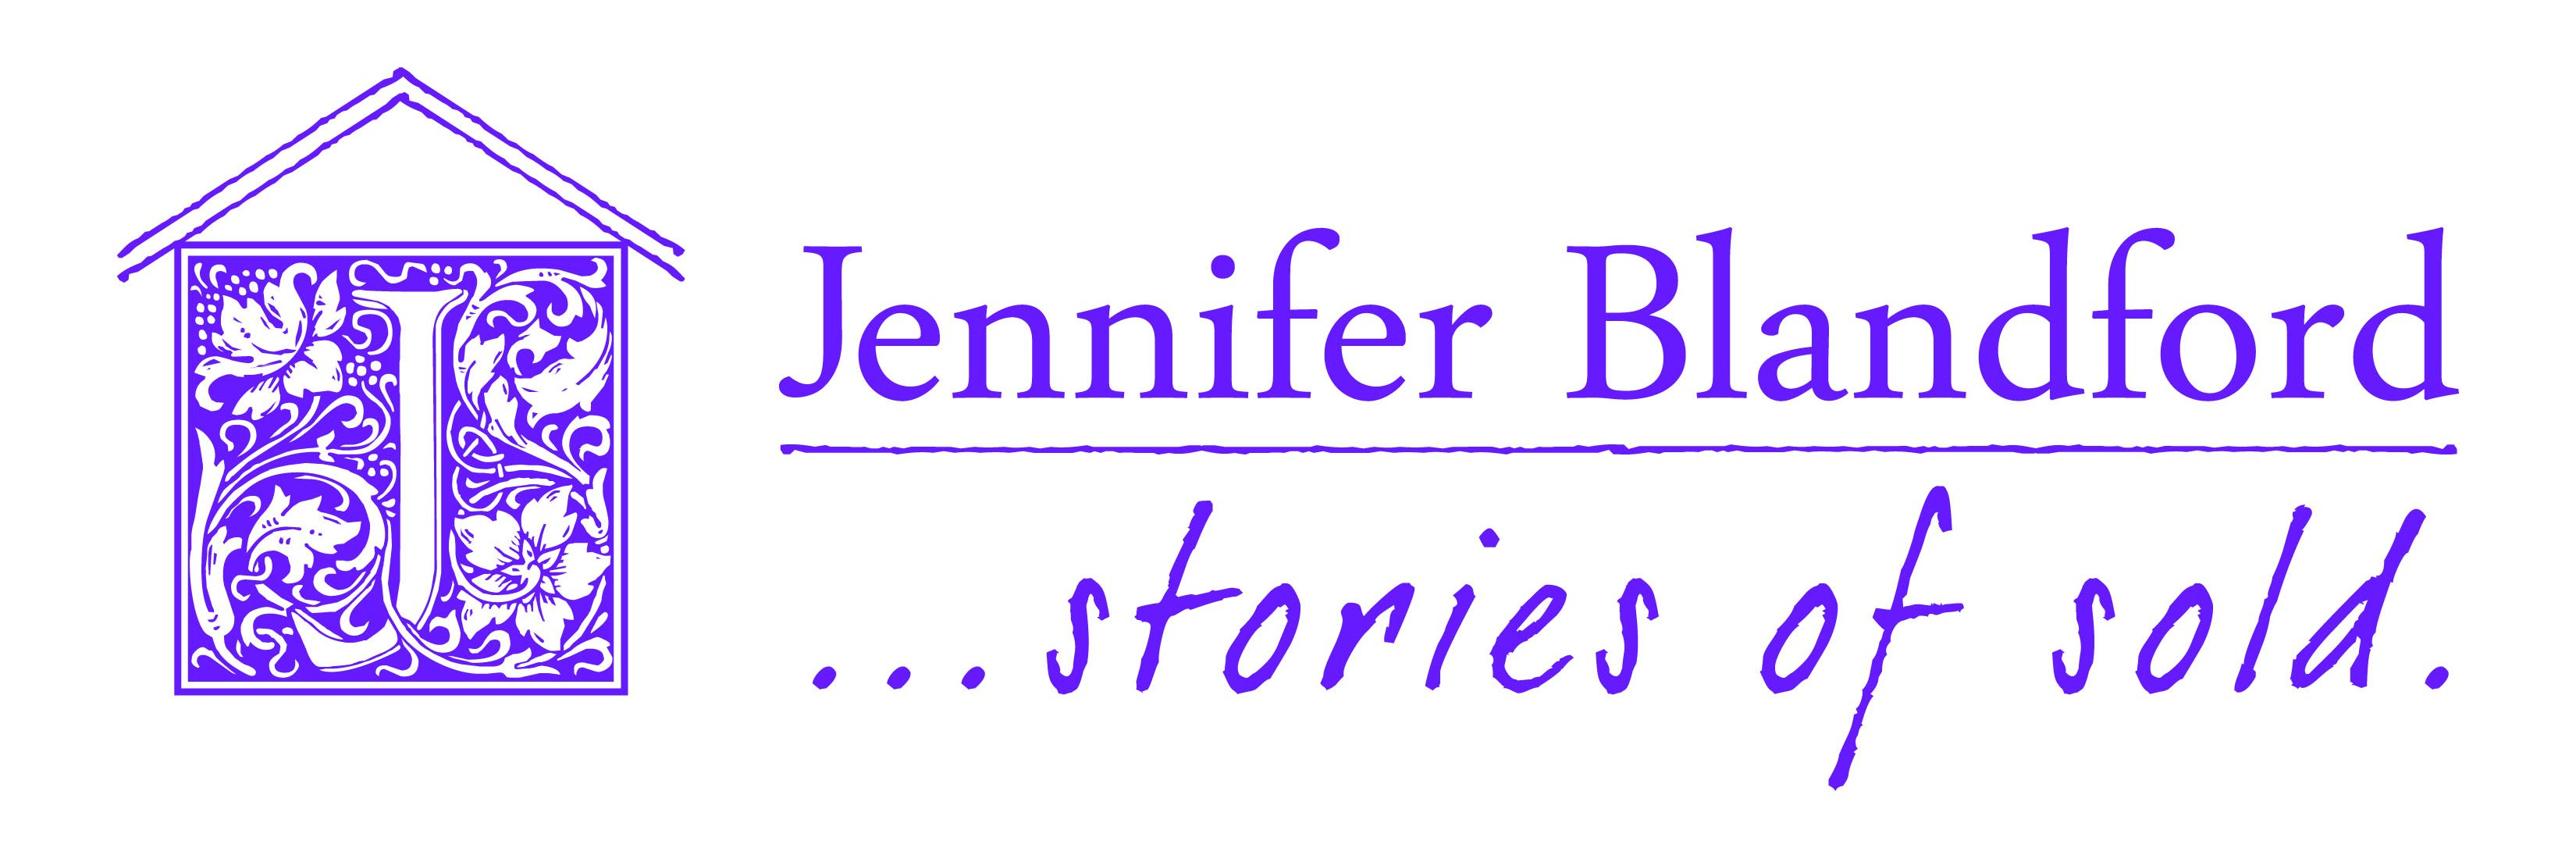 Stories of SOLD – Jennifer Blandford's Zionsville Real Estate Blog